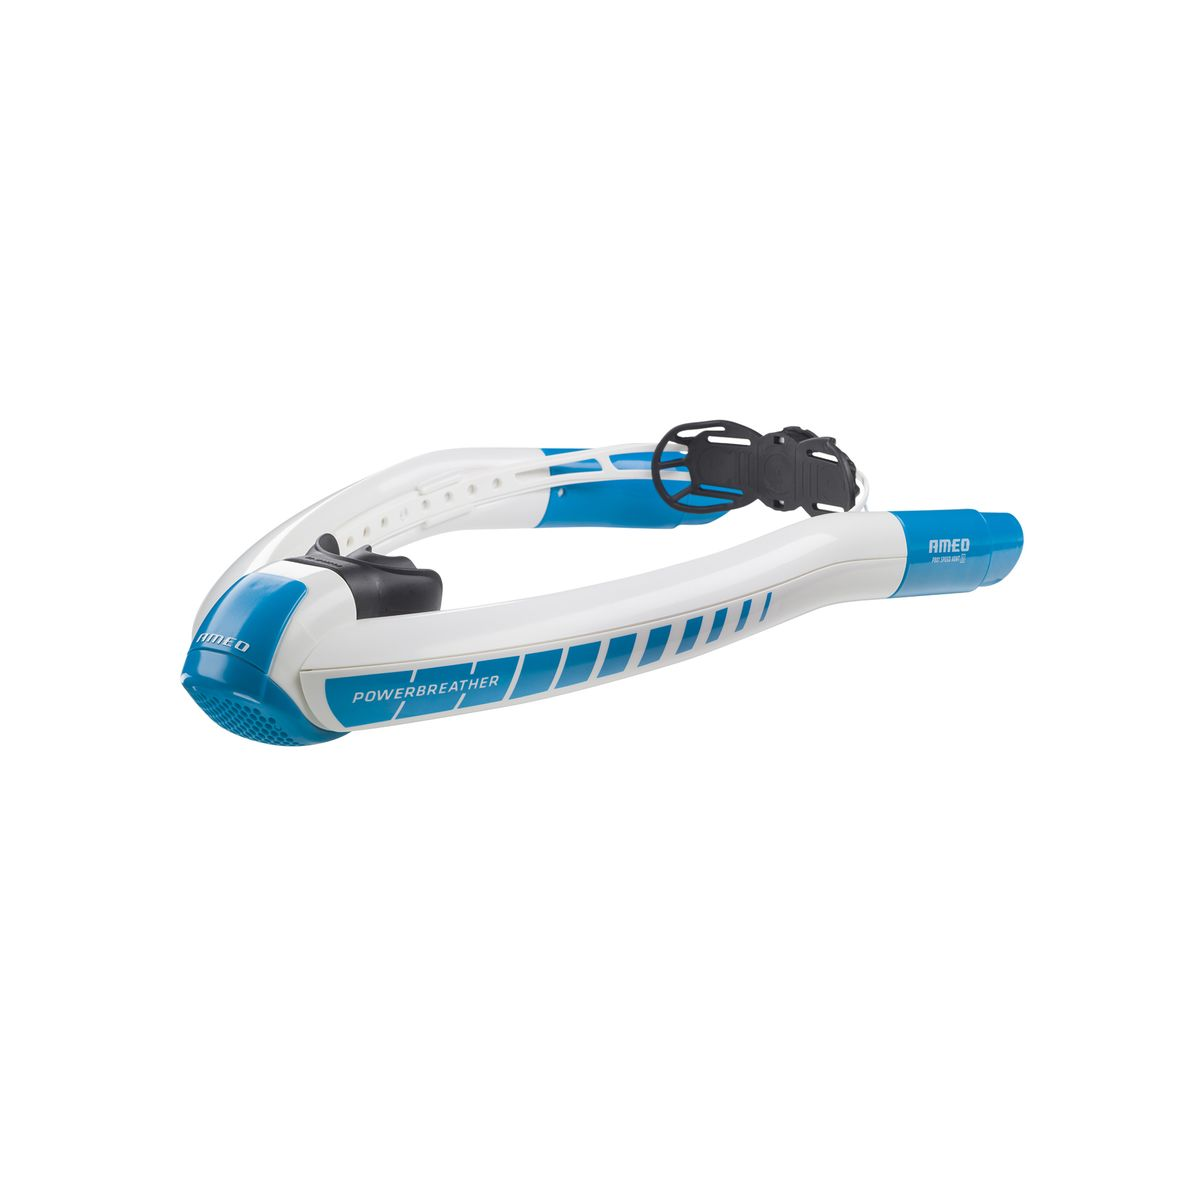 Powerbreather Wave Edition training snorkel